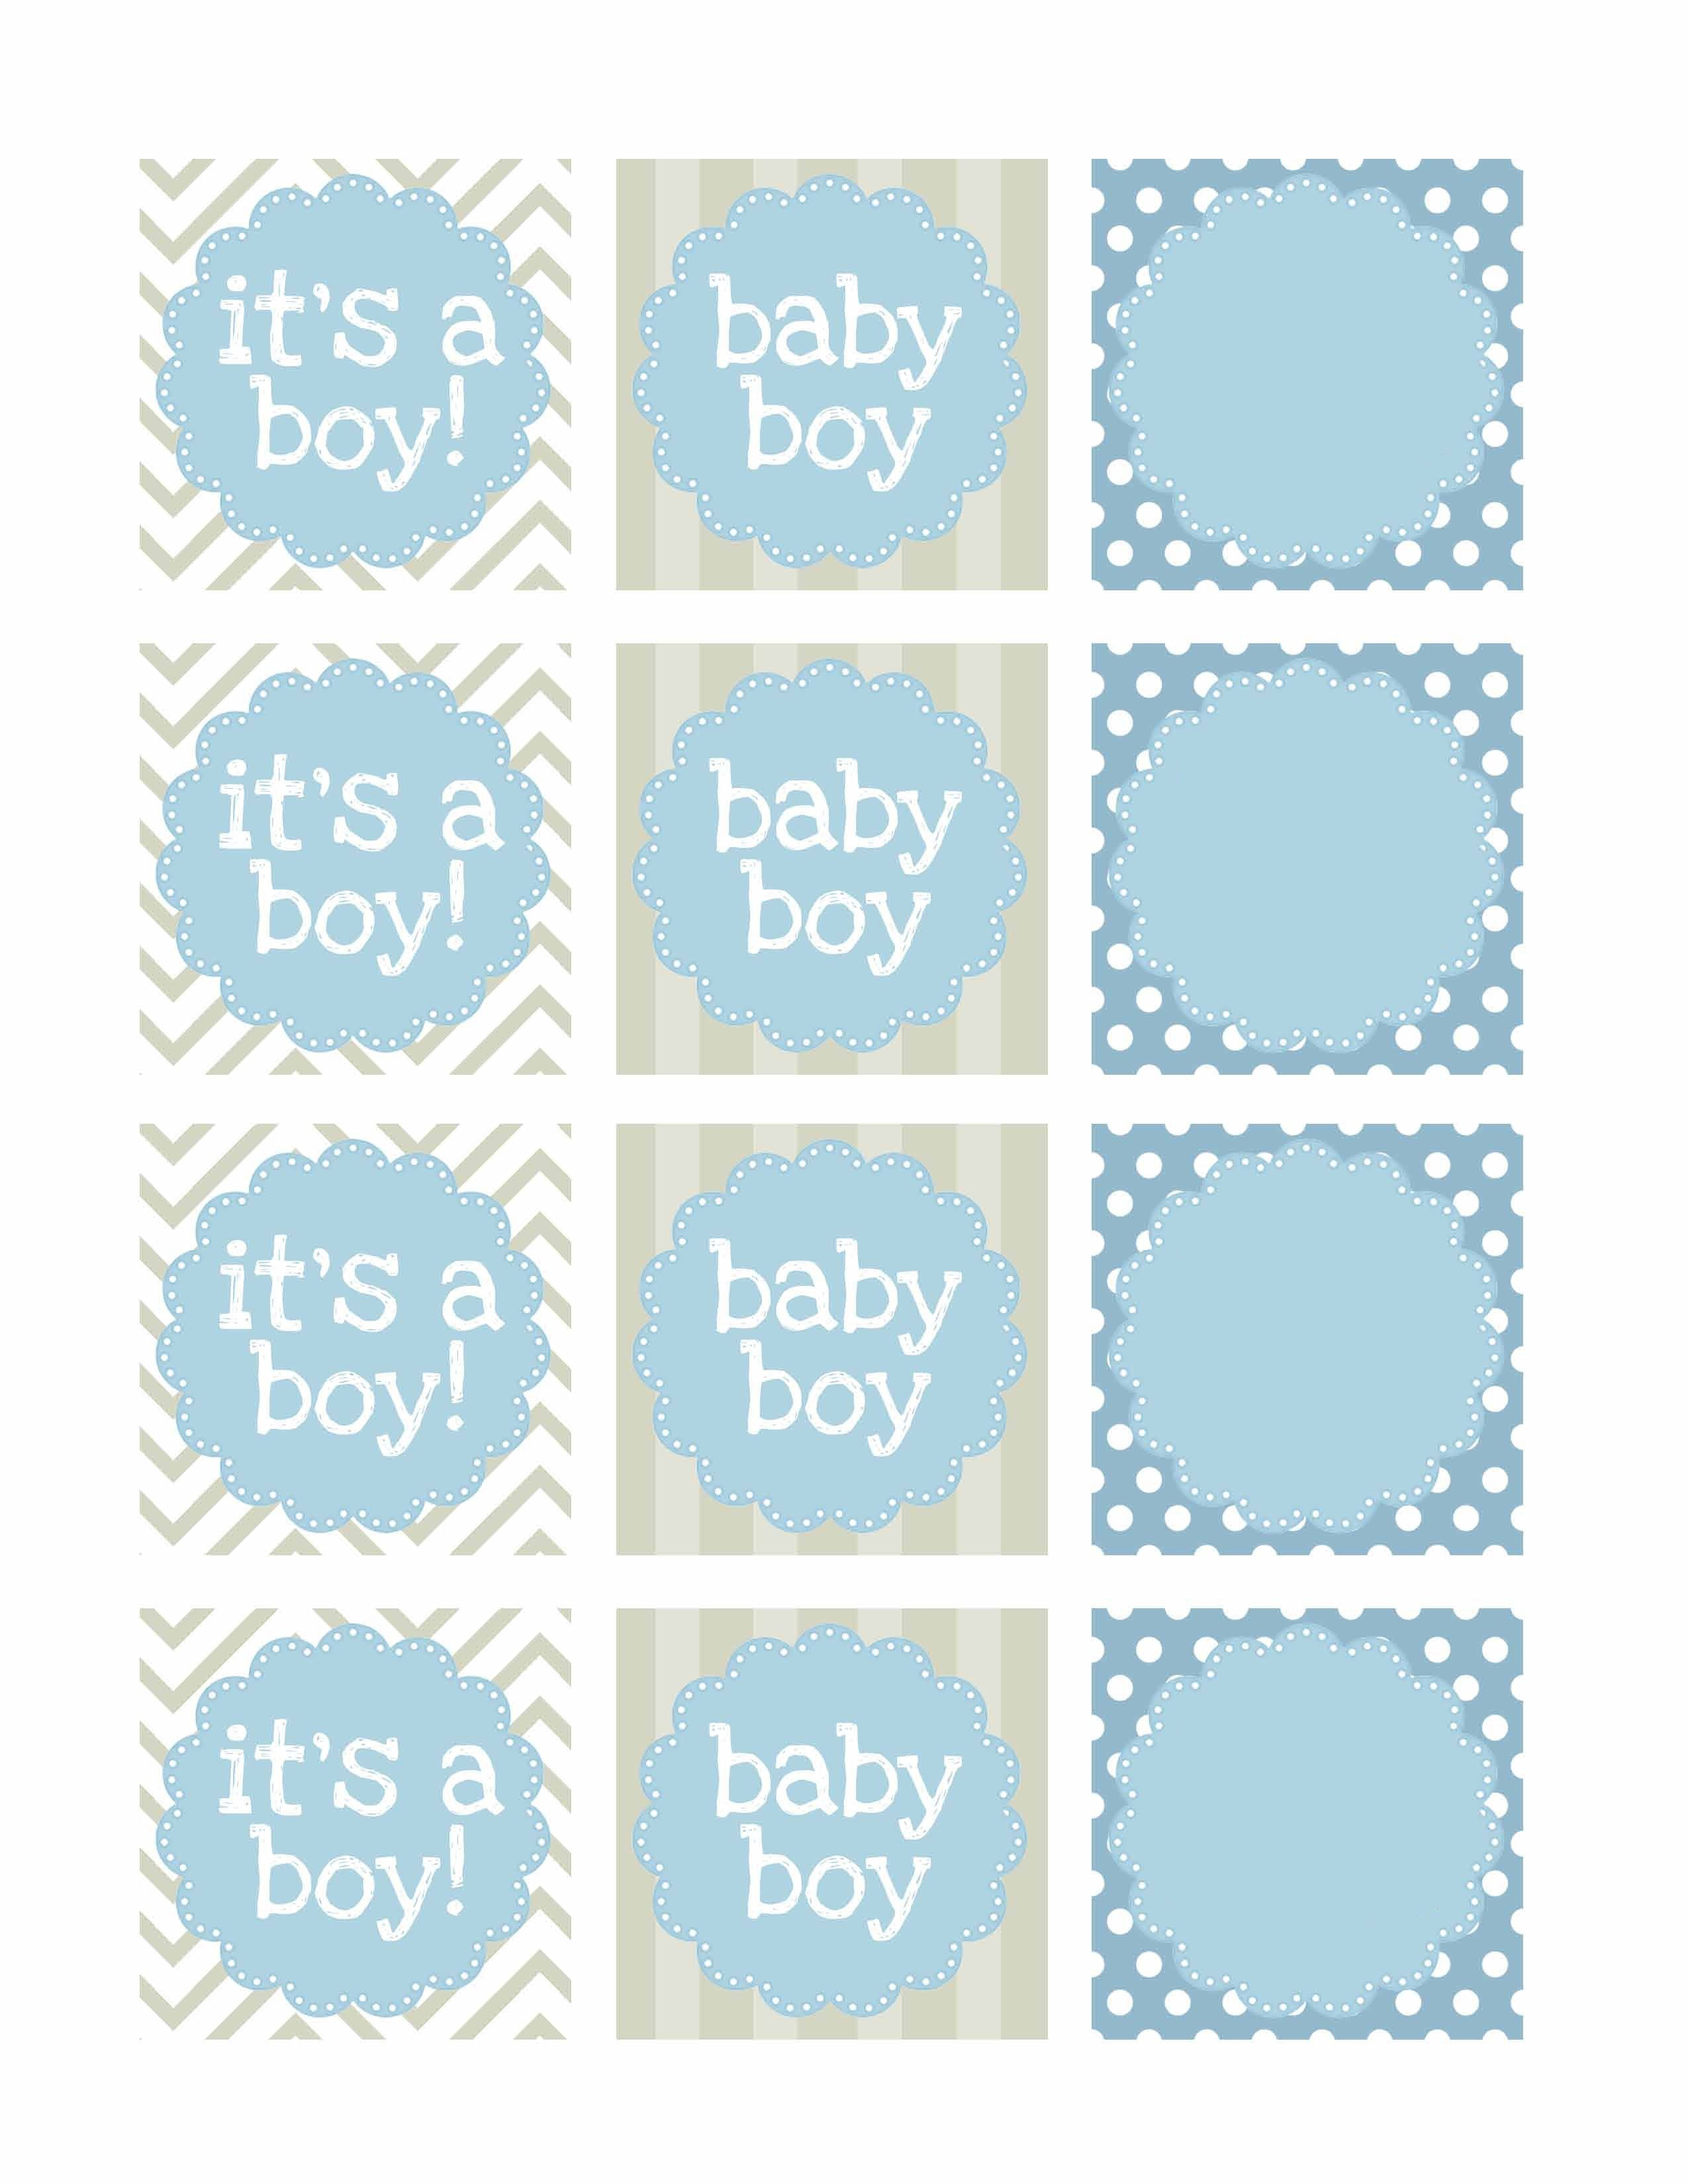 Boy Baby Shower Free Printables | Printable | Návody, Nápady, Tisk - Free Printable Baby Shower Favor Tags